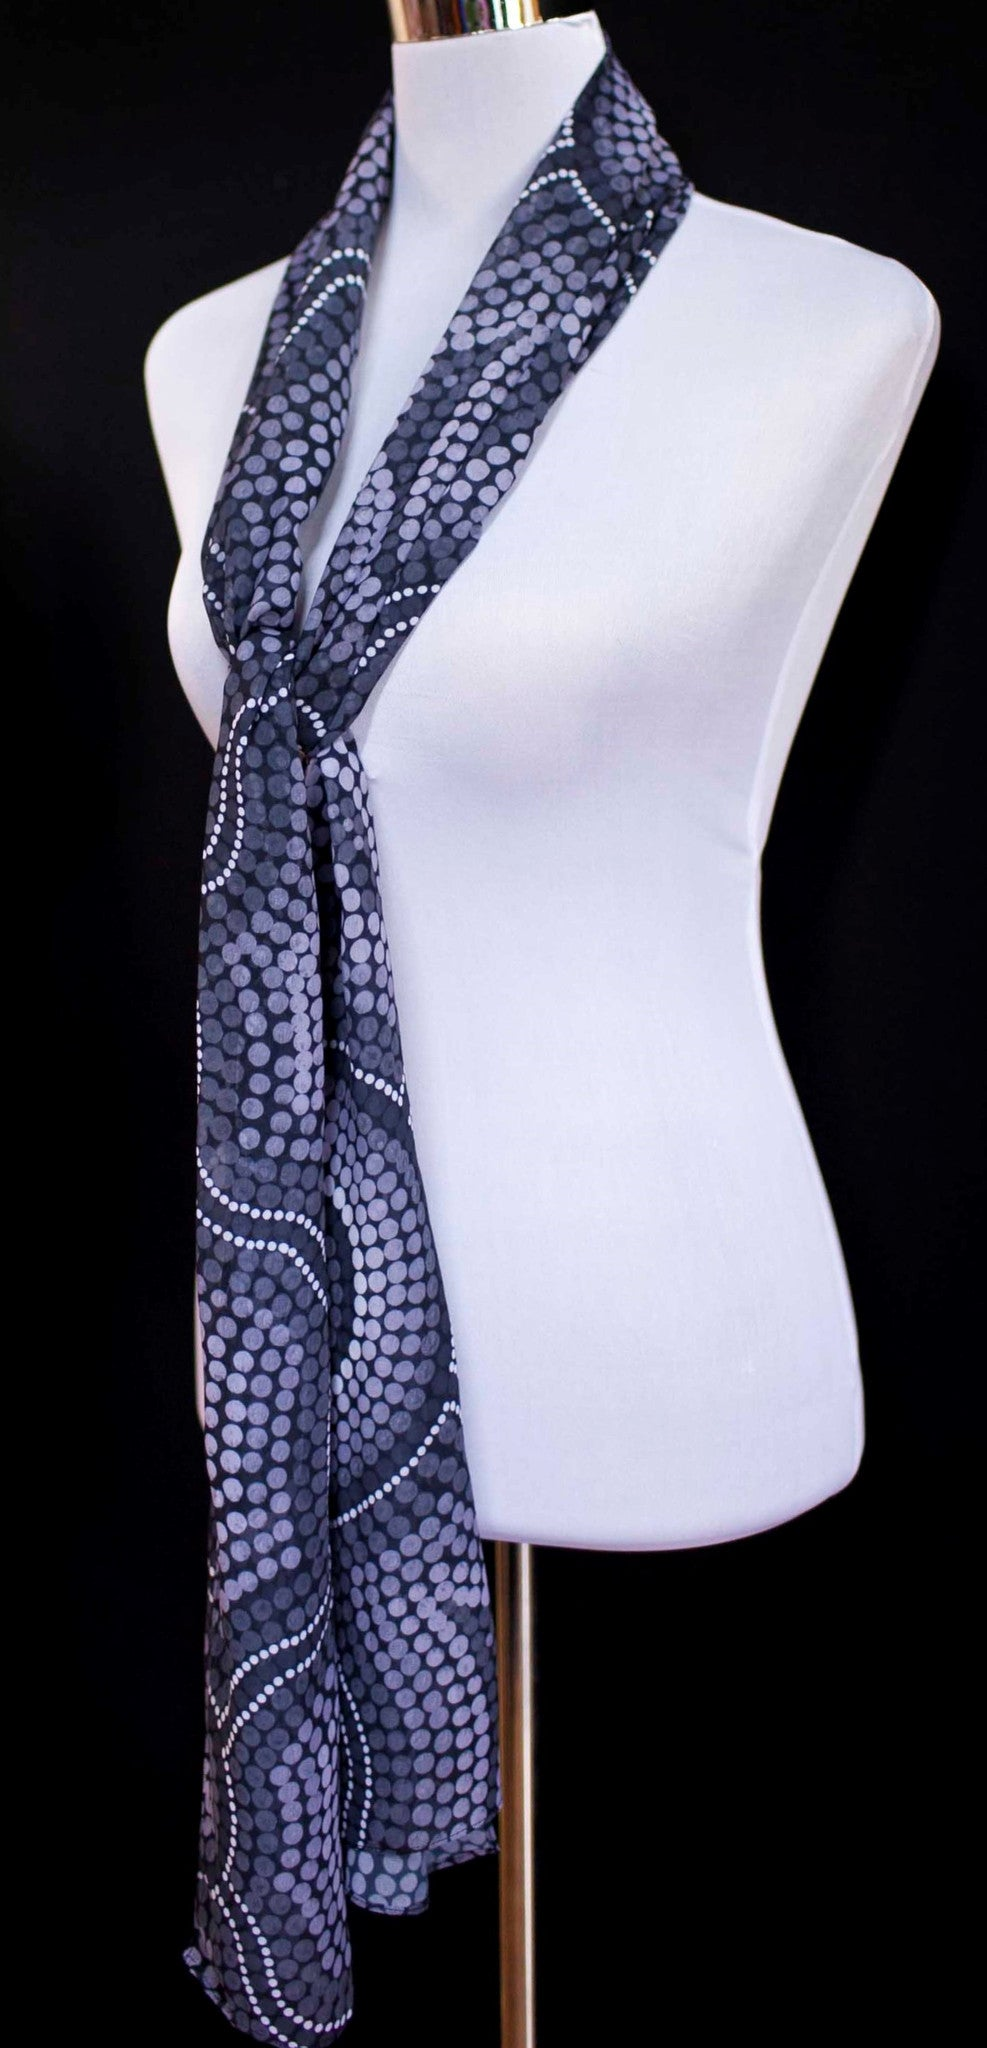 Chiffon scarf - Gatherine over waters greyscale